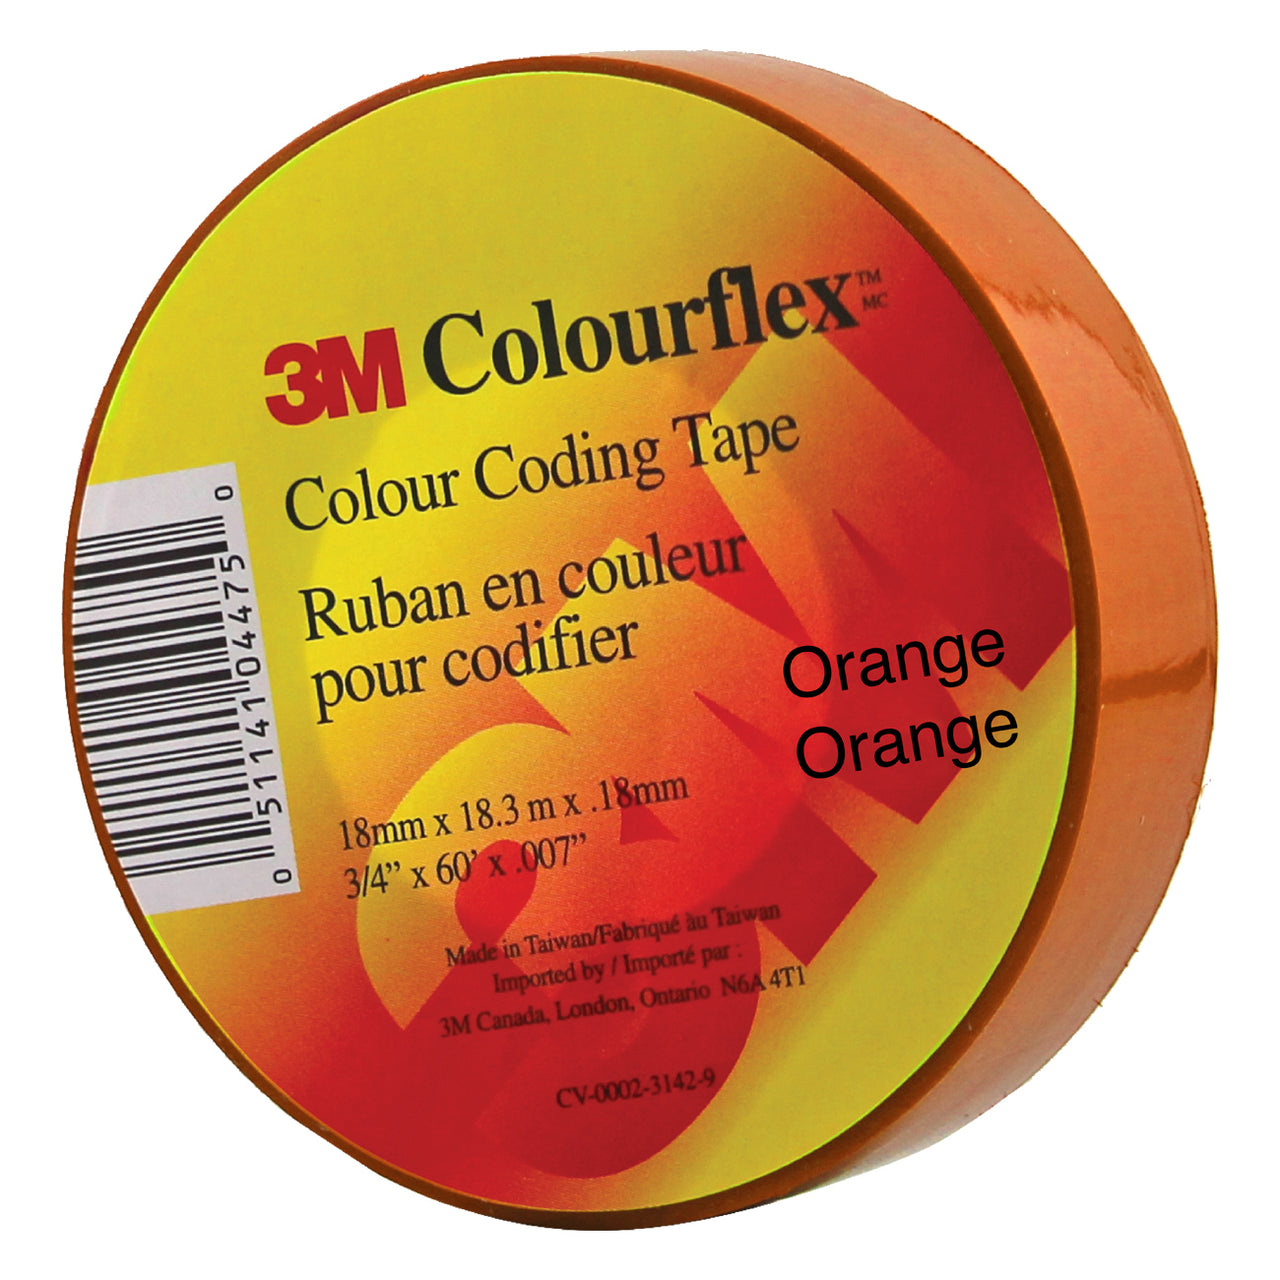 3M Colourflex Coding Tape 3/4X60 (Orange) - Wound Dressing 3M - Canada